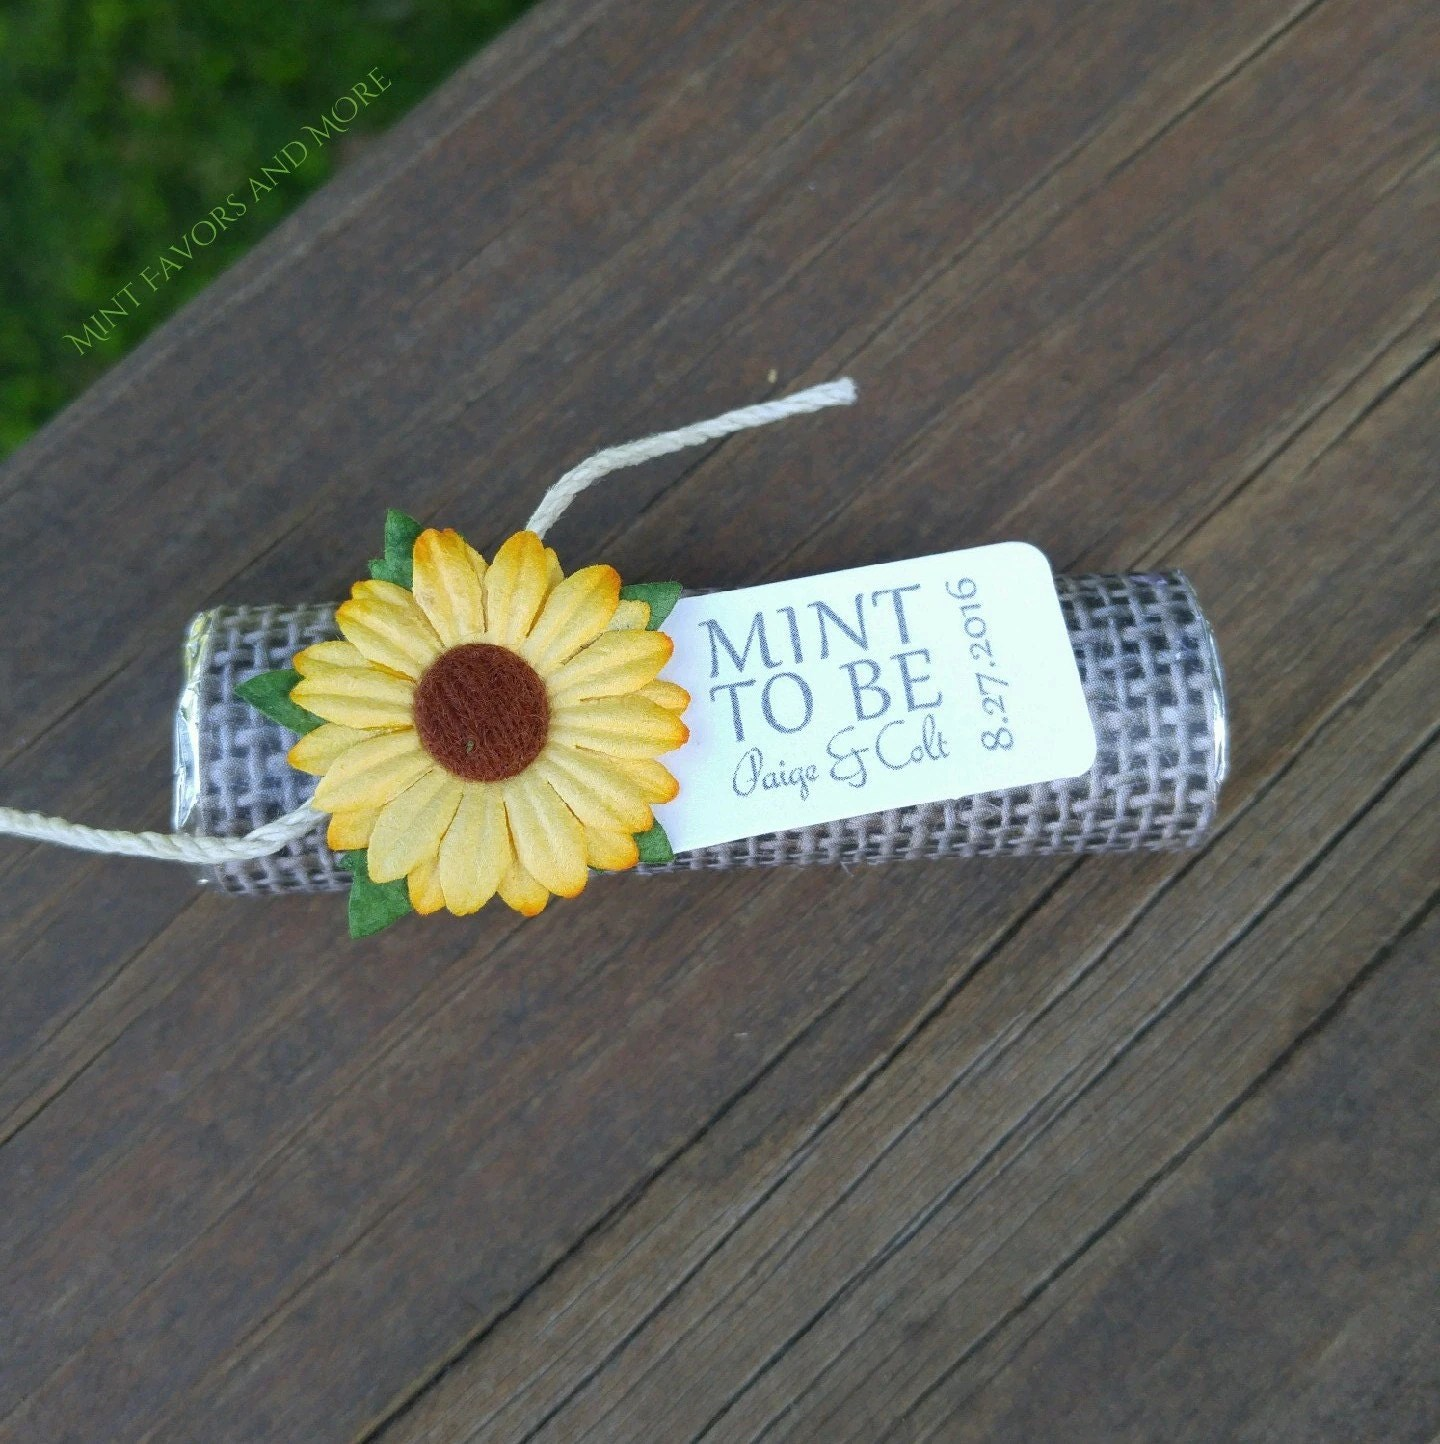 fall wedding favor fall wedding favors sunflower wedding favors with personalized tag set of 24 mint wedding favors burlap rustic fall theme autumn chic sunflower wedding